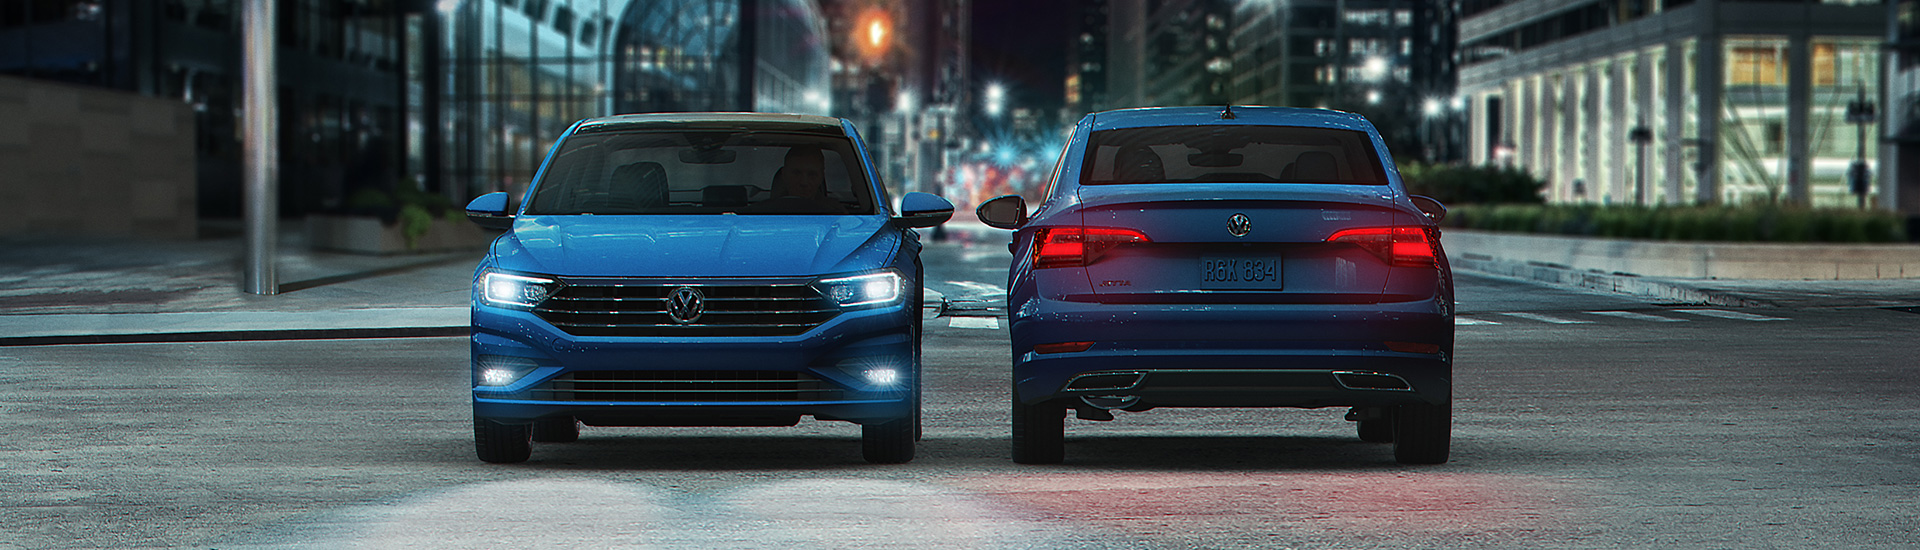 Two 2019 Jetta sedans front grill and rear view